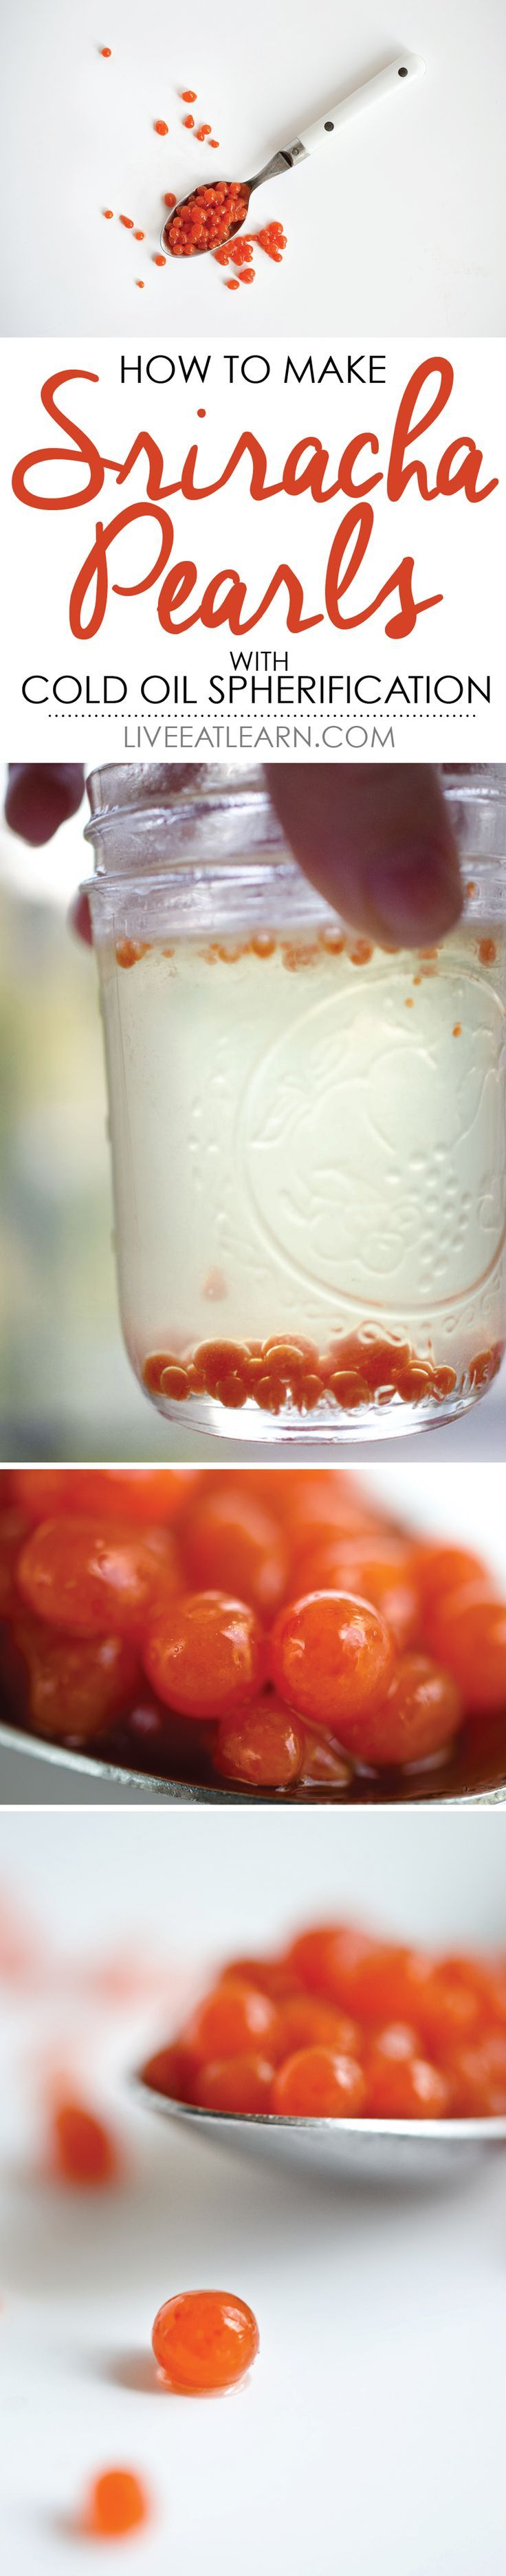 "Make these easy Sriracha ""Caviar"" using the molecular gastronomy trick, cold oil spherification! // Live Eat Learn"